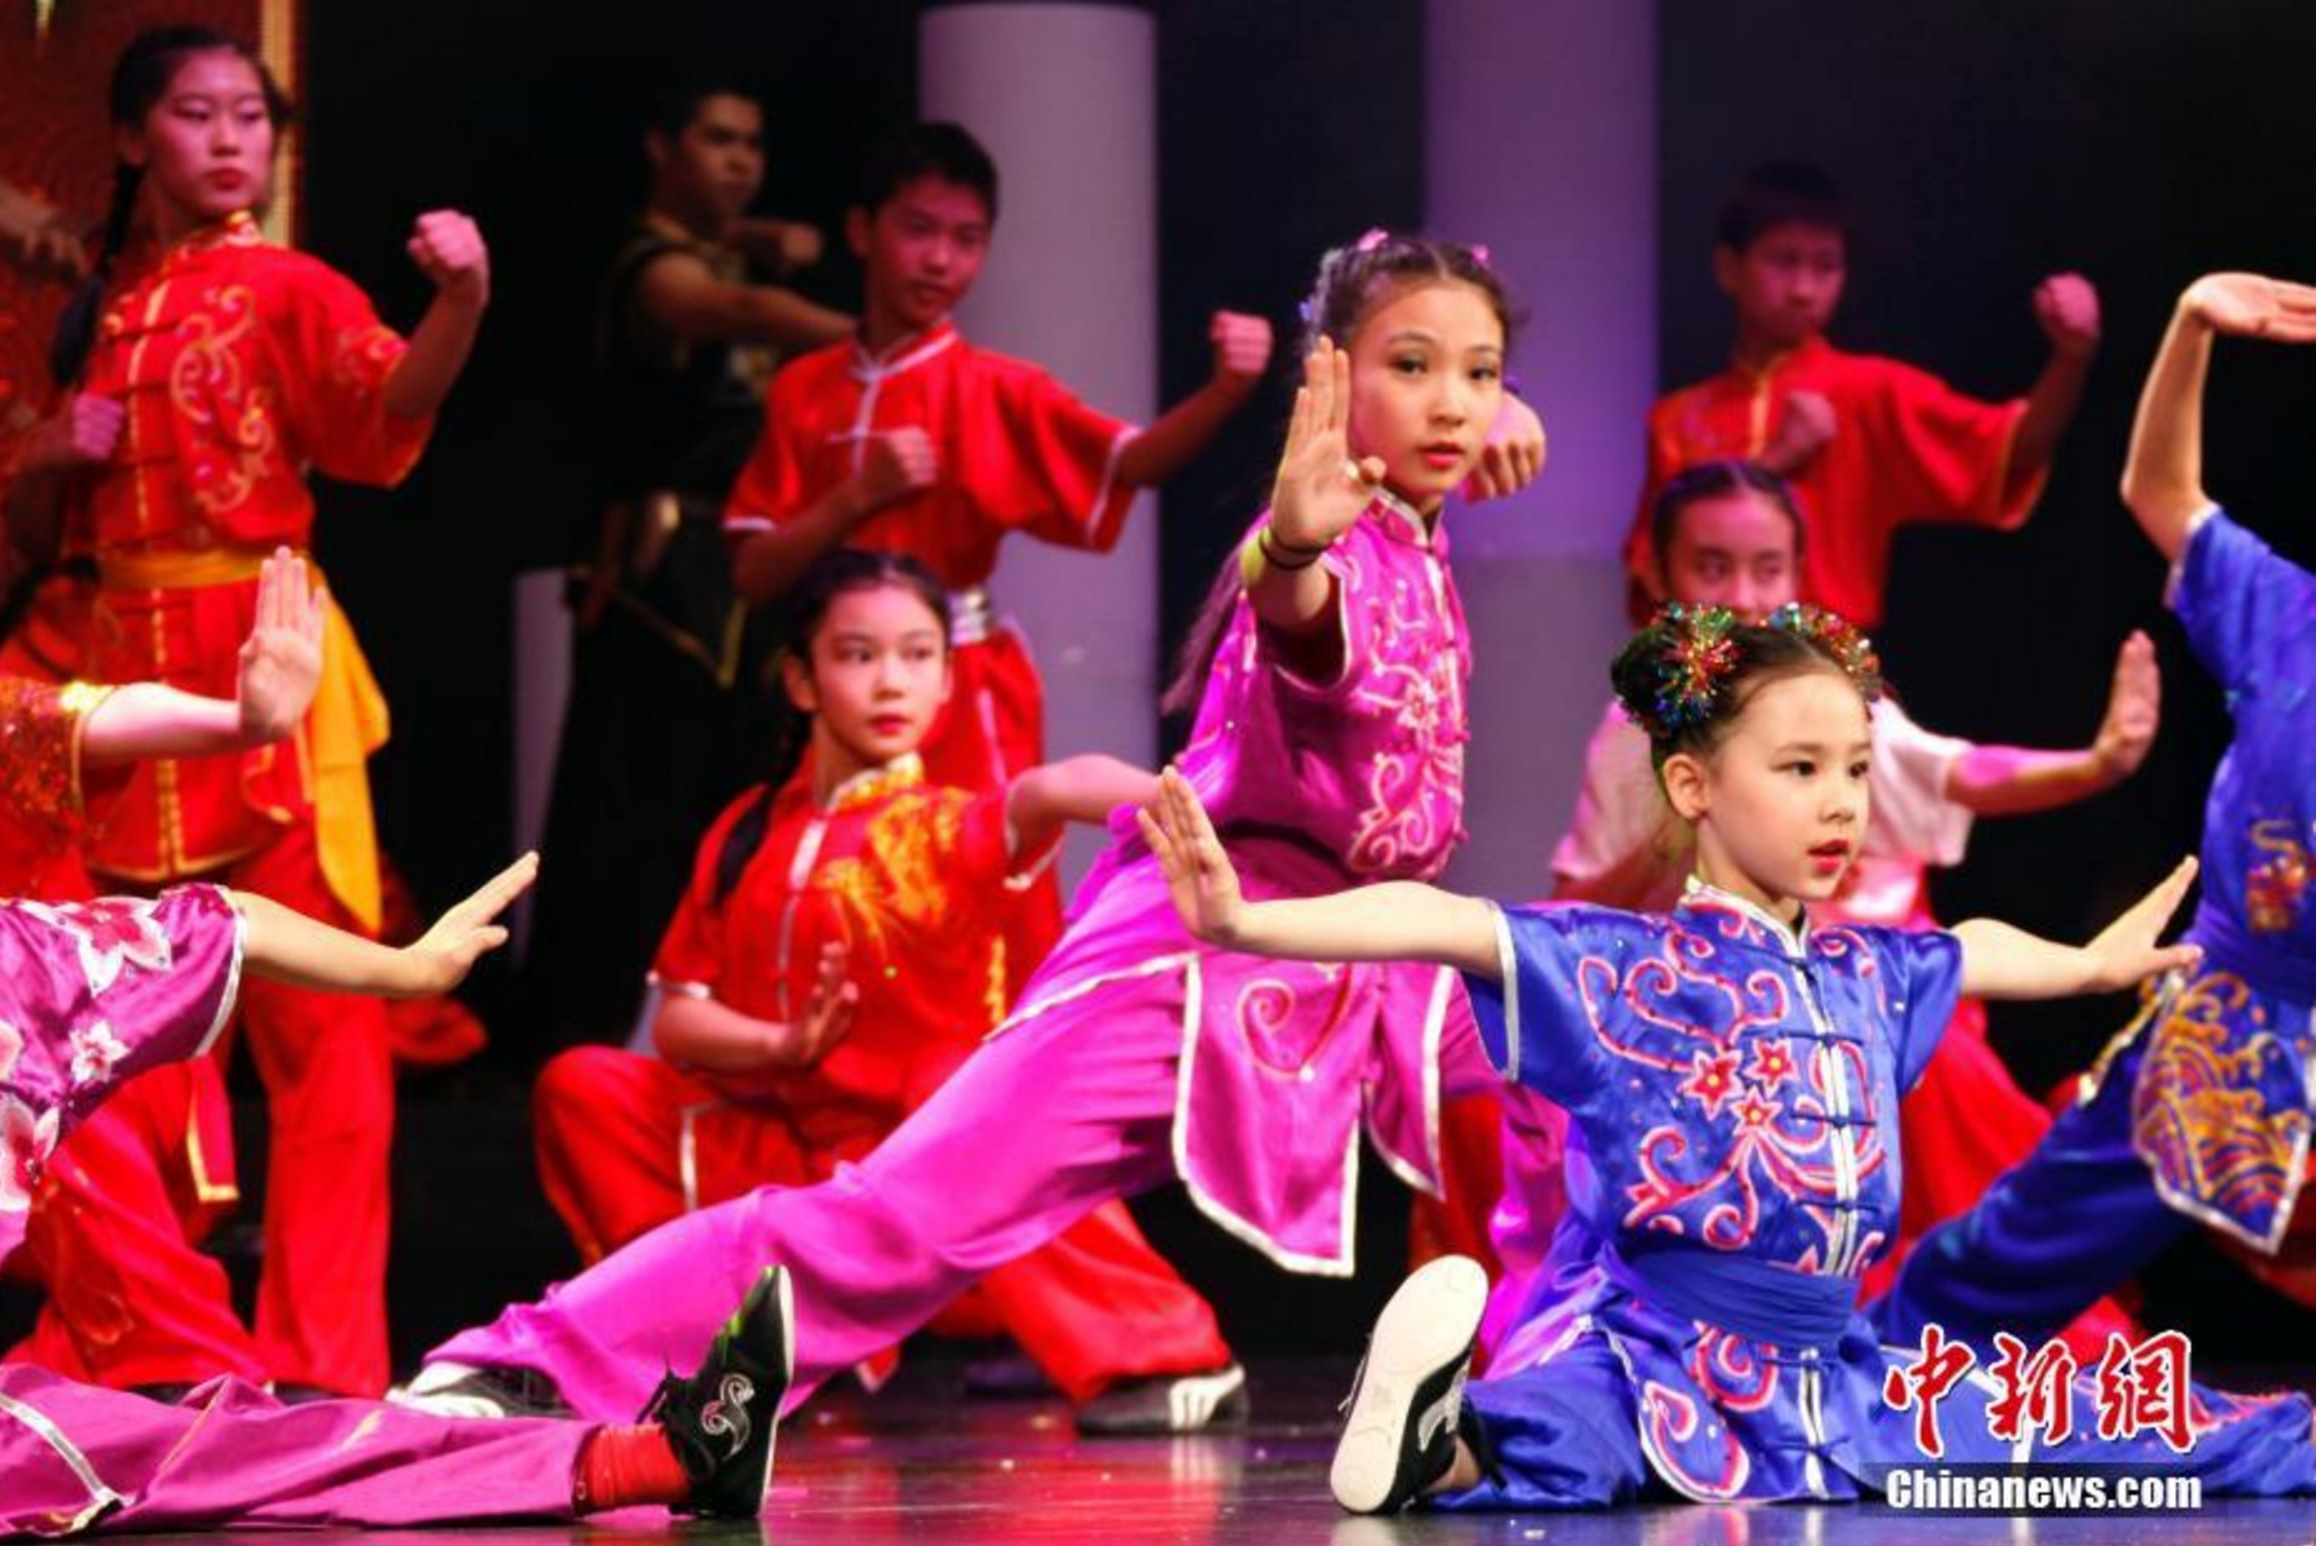 Young Wushu champions from Wayland Li.